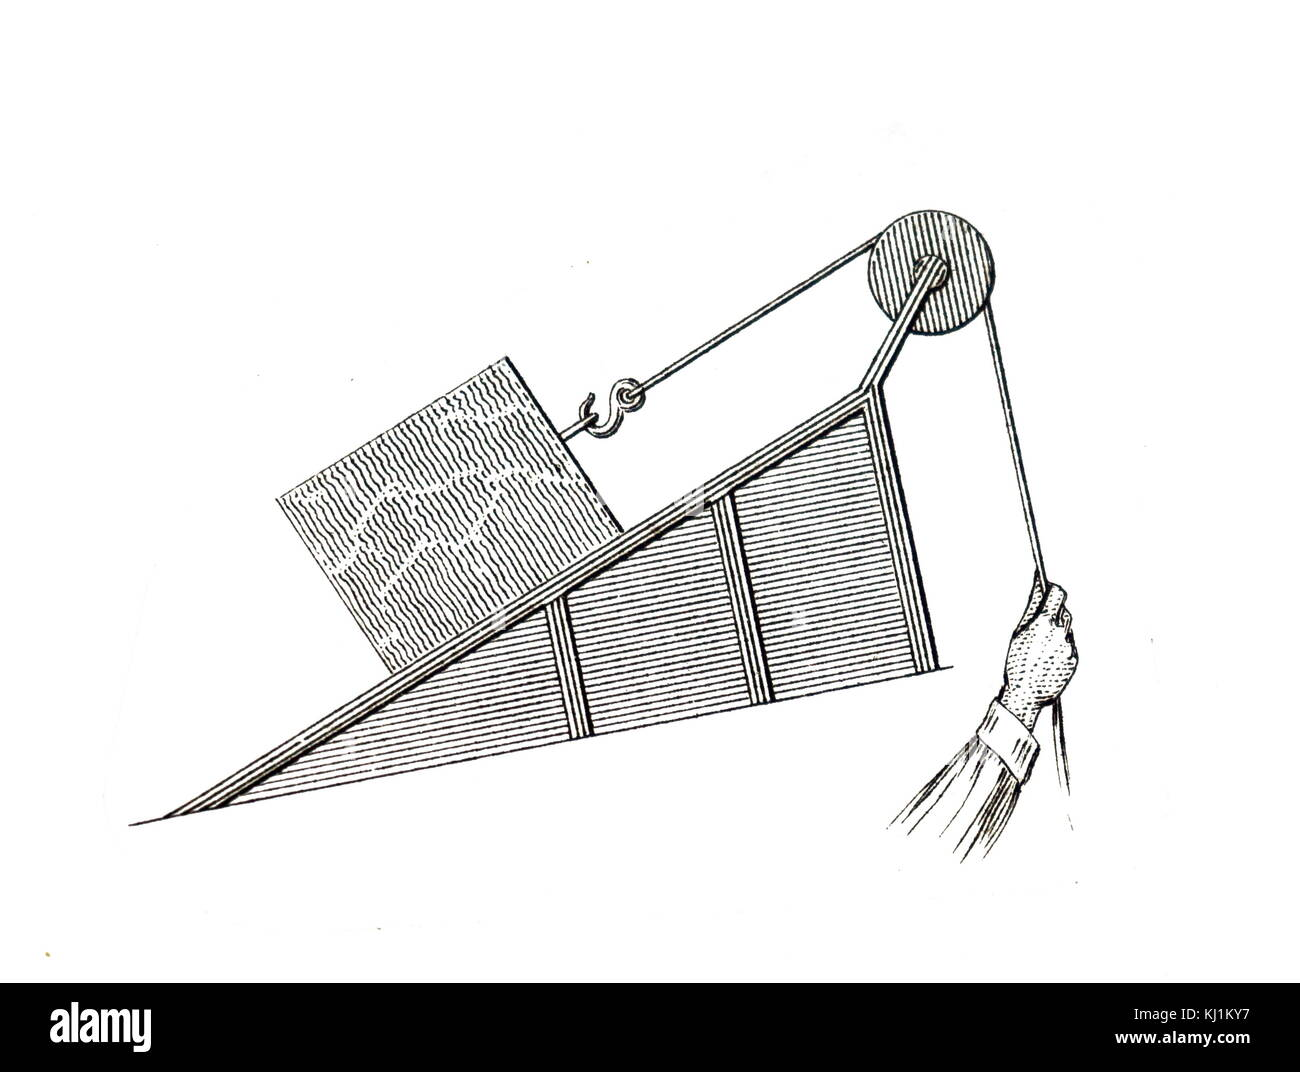 Illustration of an 19th Century mechanical pulley Stock Photo